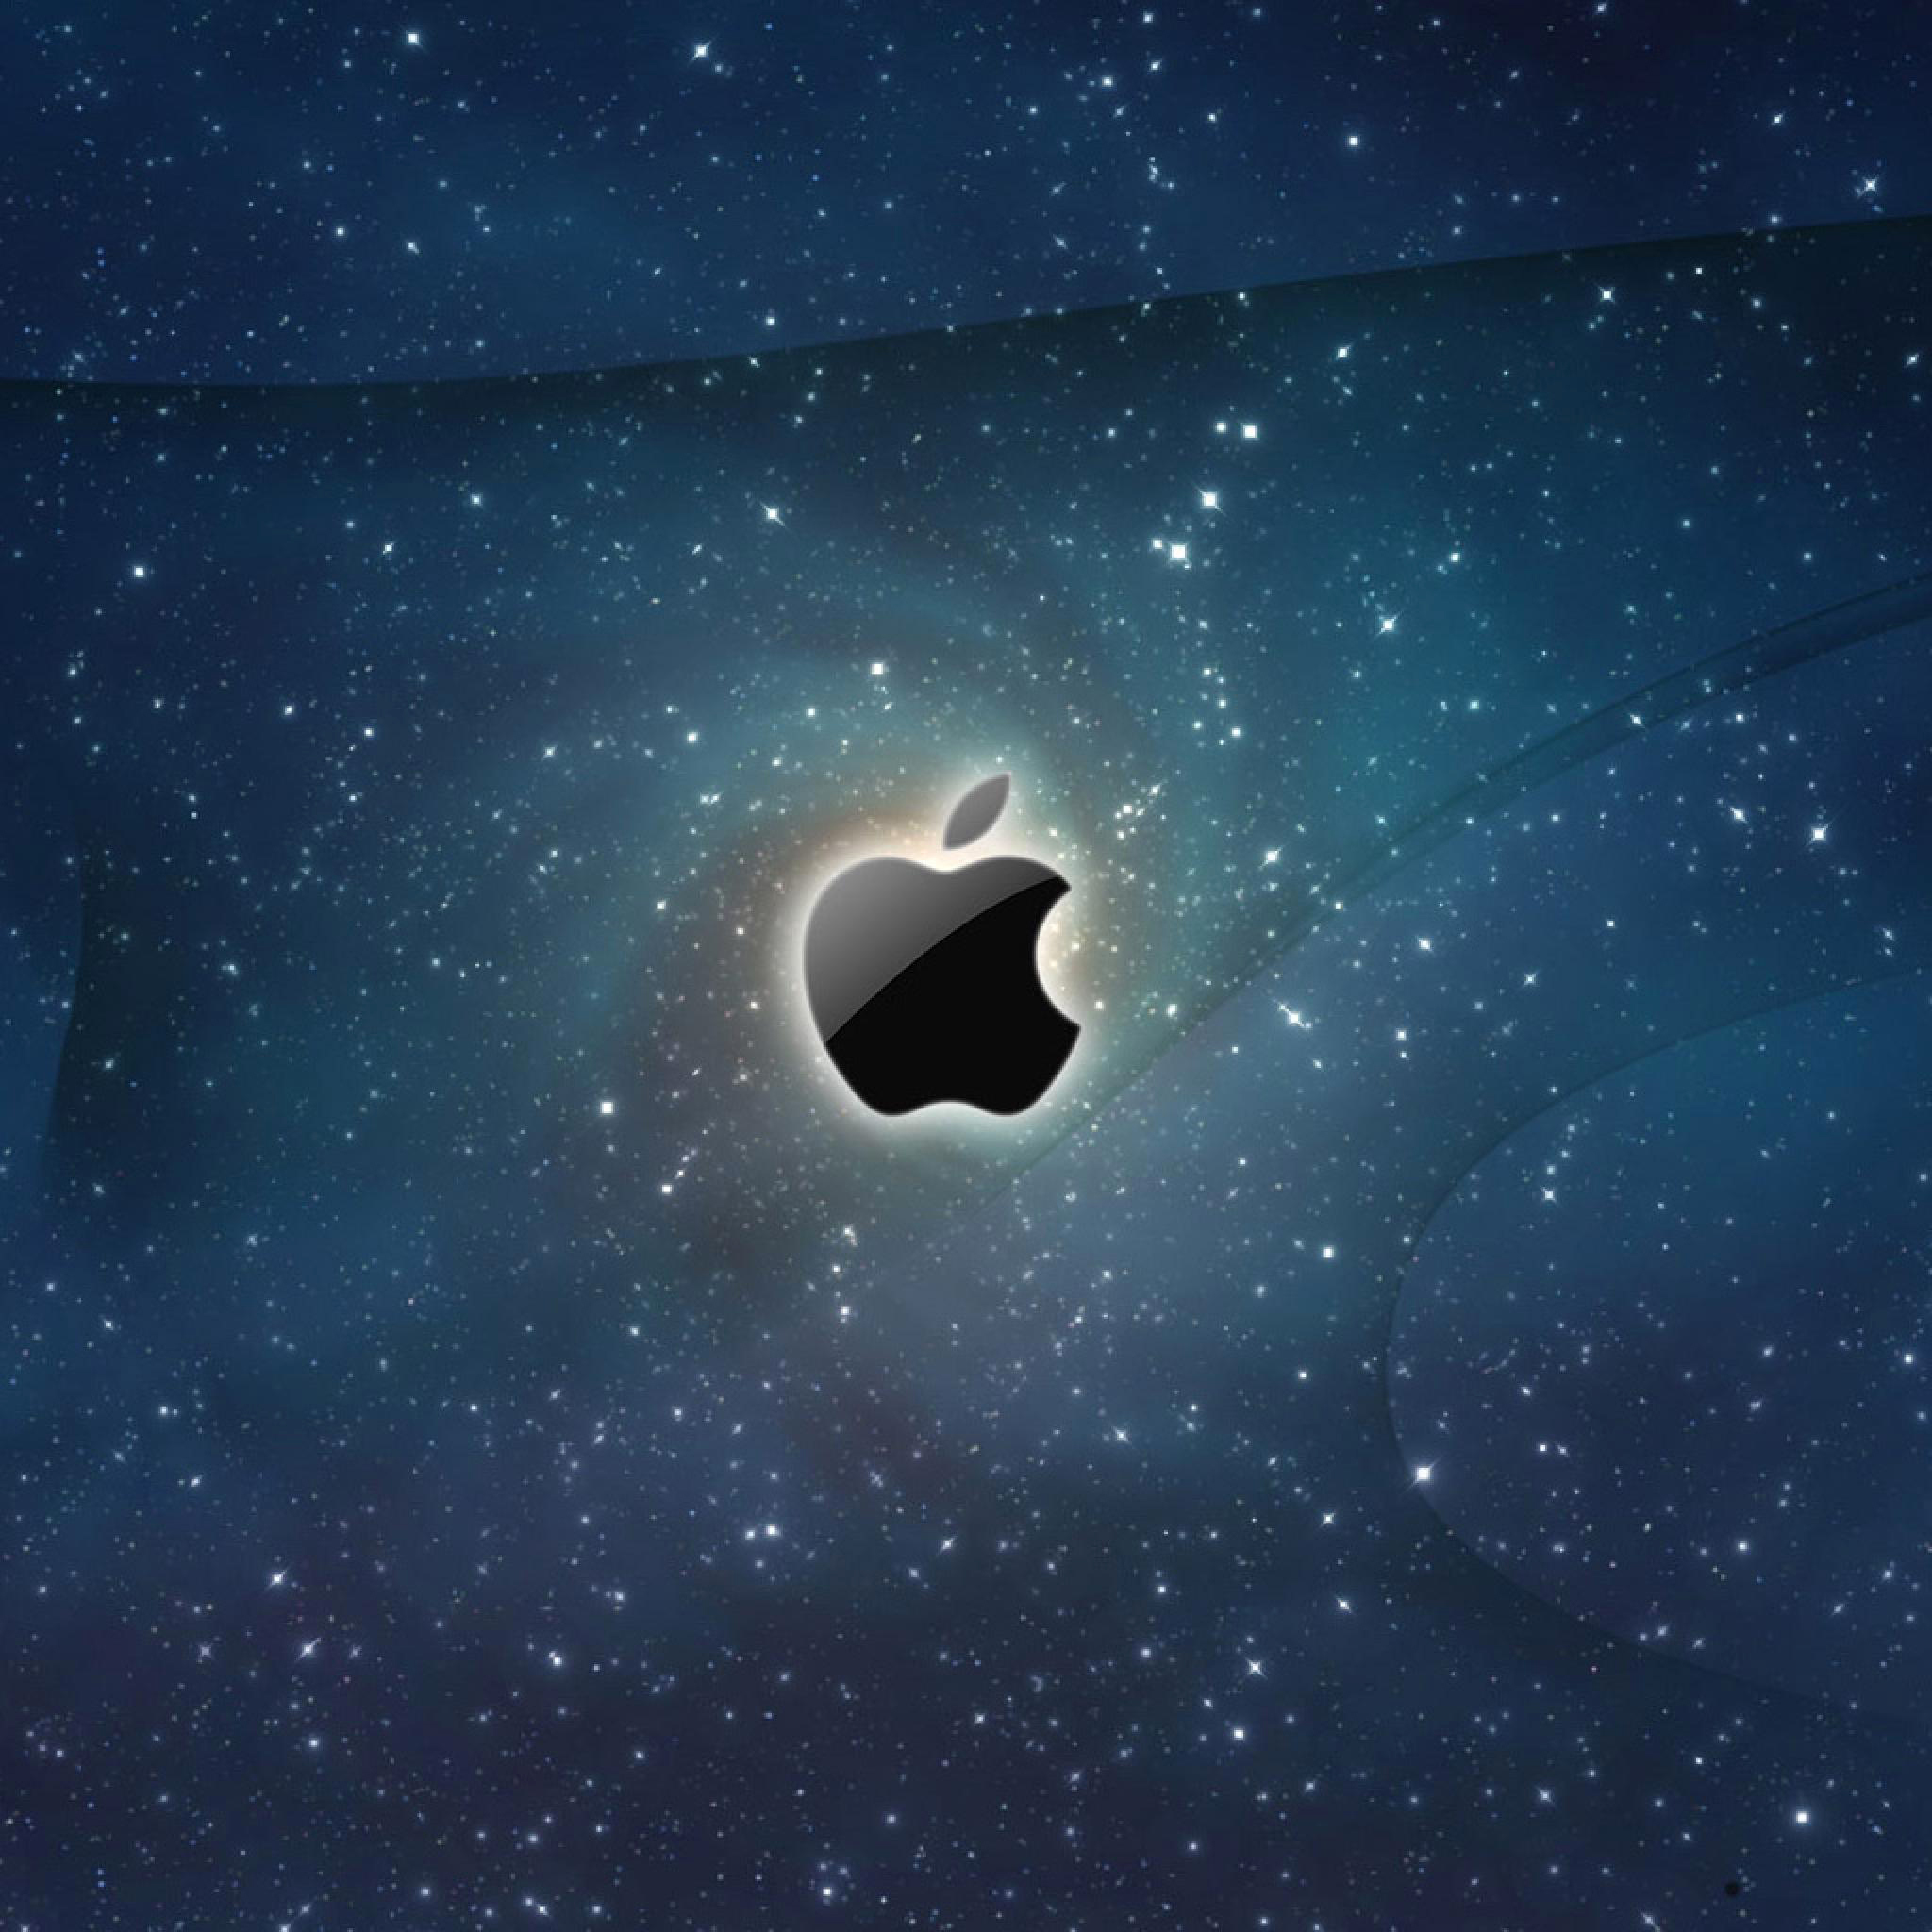 apple galaxy ipad retina wallpaper for iphone x 8 7 6 free download on 3wallpapers. Black Bedroom Furniture Sets. Home Design Ideas